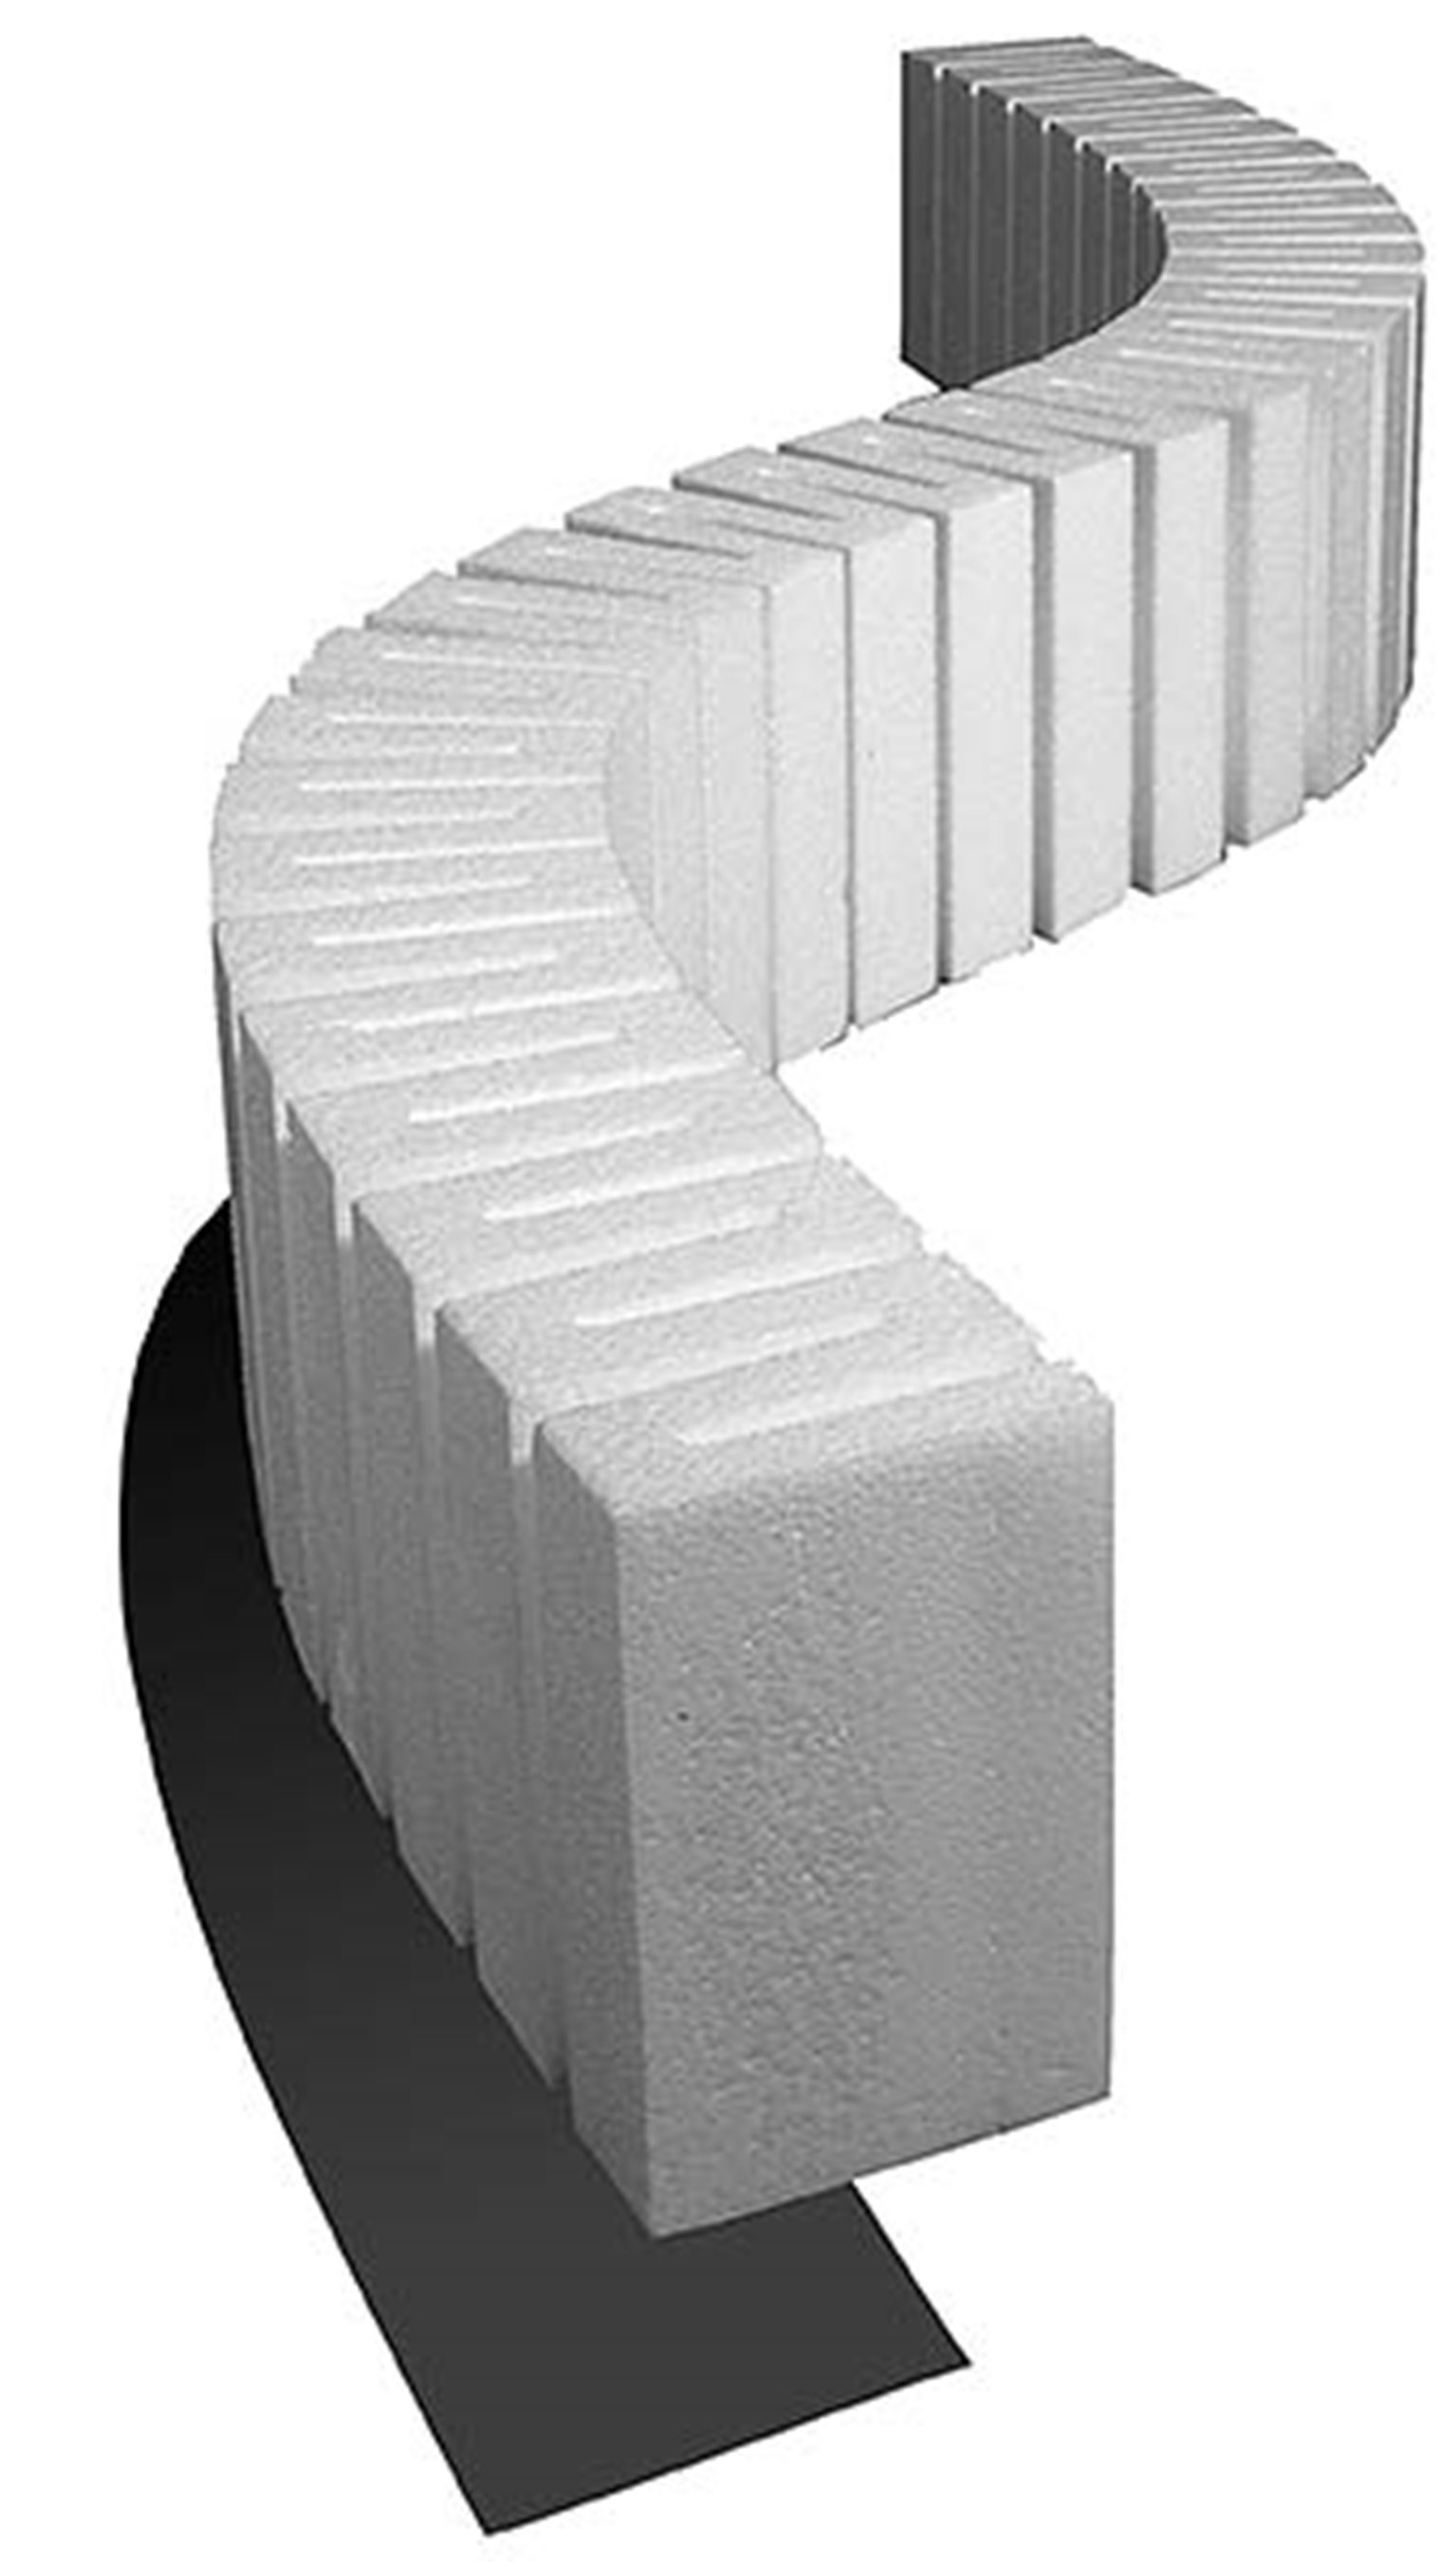 4 Inch Risers (Pack of 2)